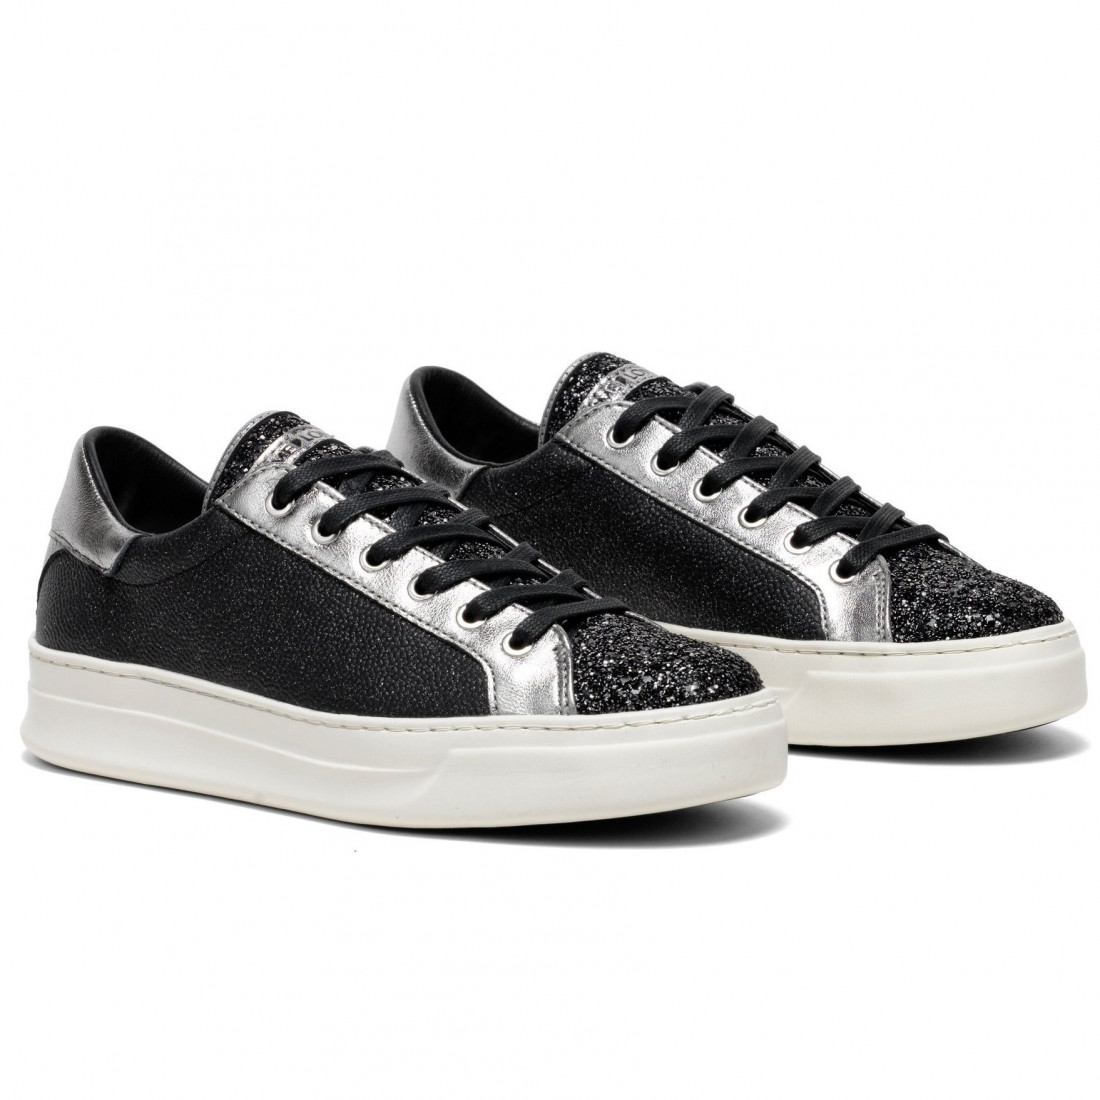 sneakers donna crime london 2580932 dark grey 7727